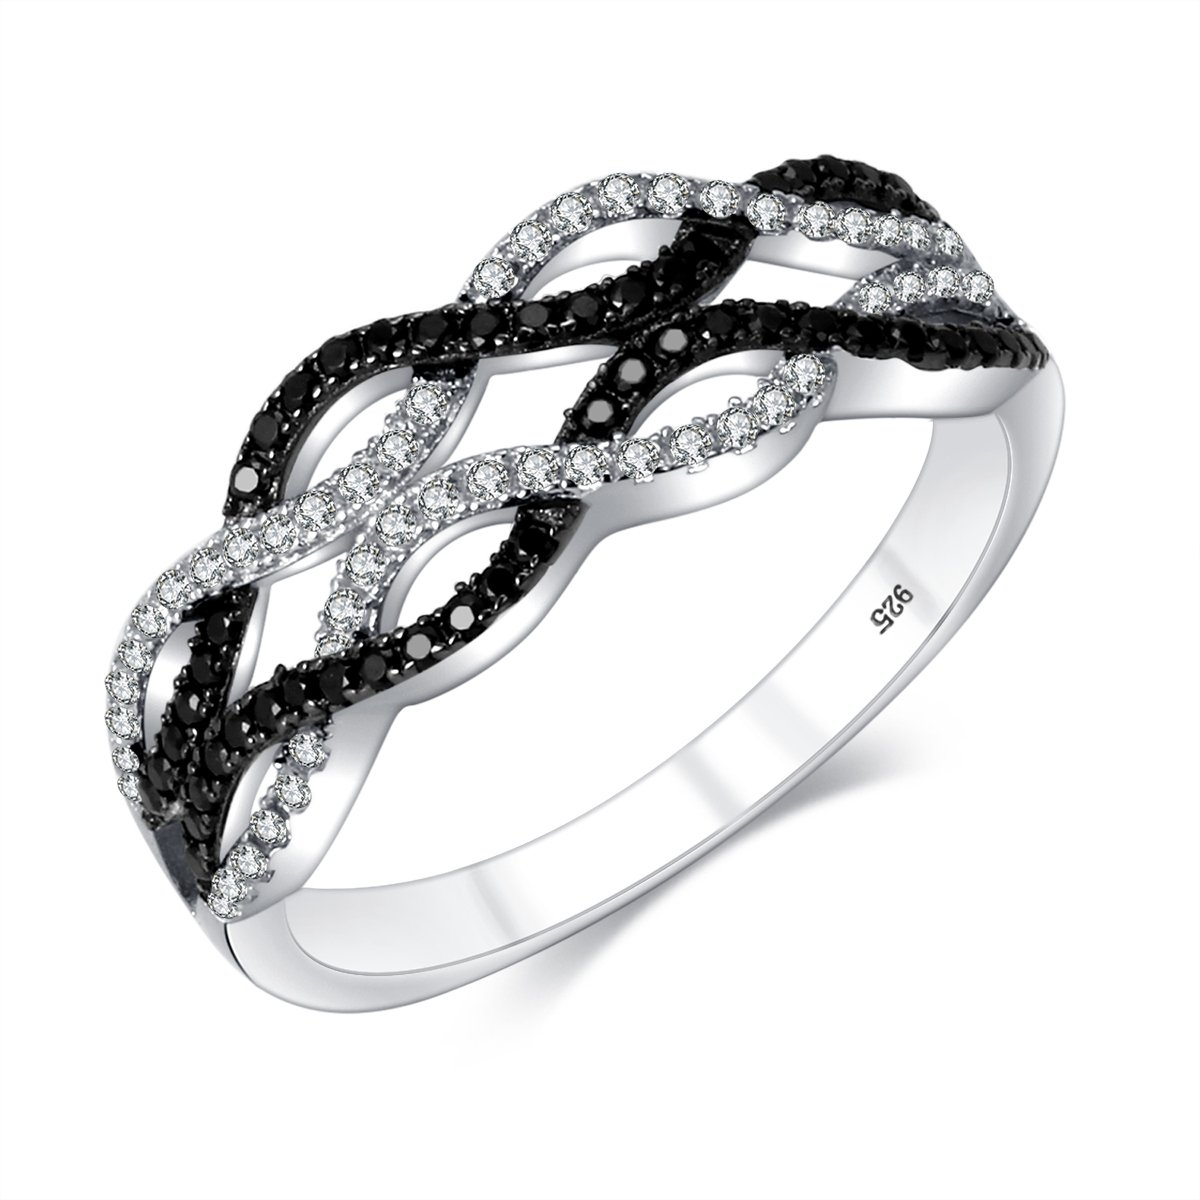 M&D Jewelry Wedding Bands 925 Sterling Silver Black & White Paved Braided Criss-Cross Twisted Wave Statement Infinity Swirl Ring